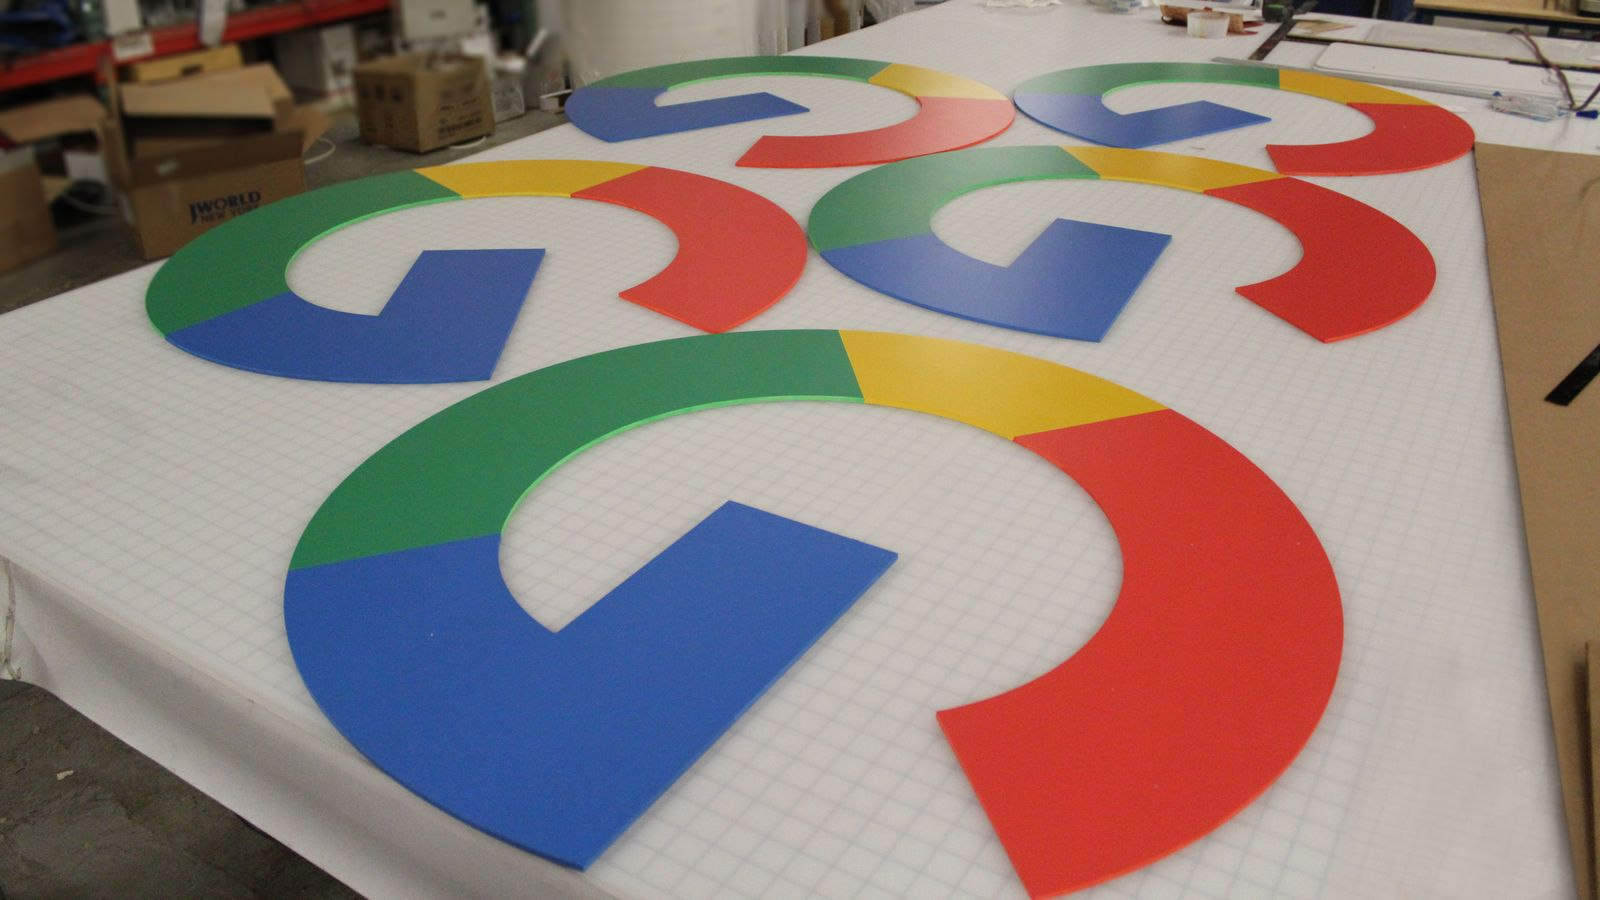 Google 3d plastic logo signs in bright brand colors made of PVC displayed on the table before installation